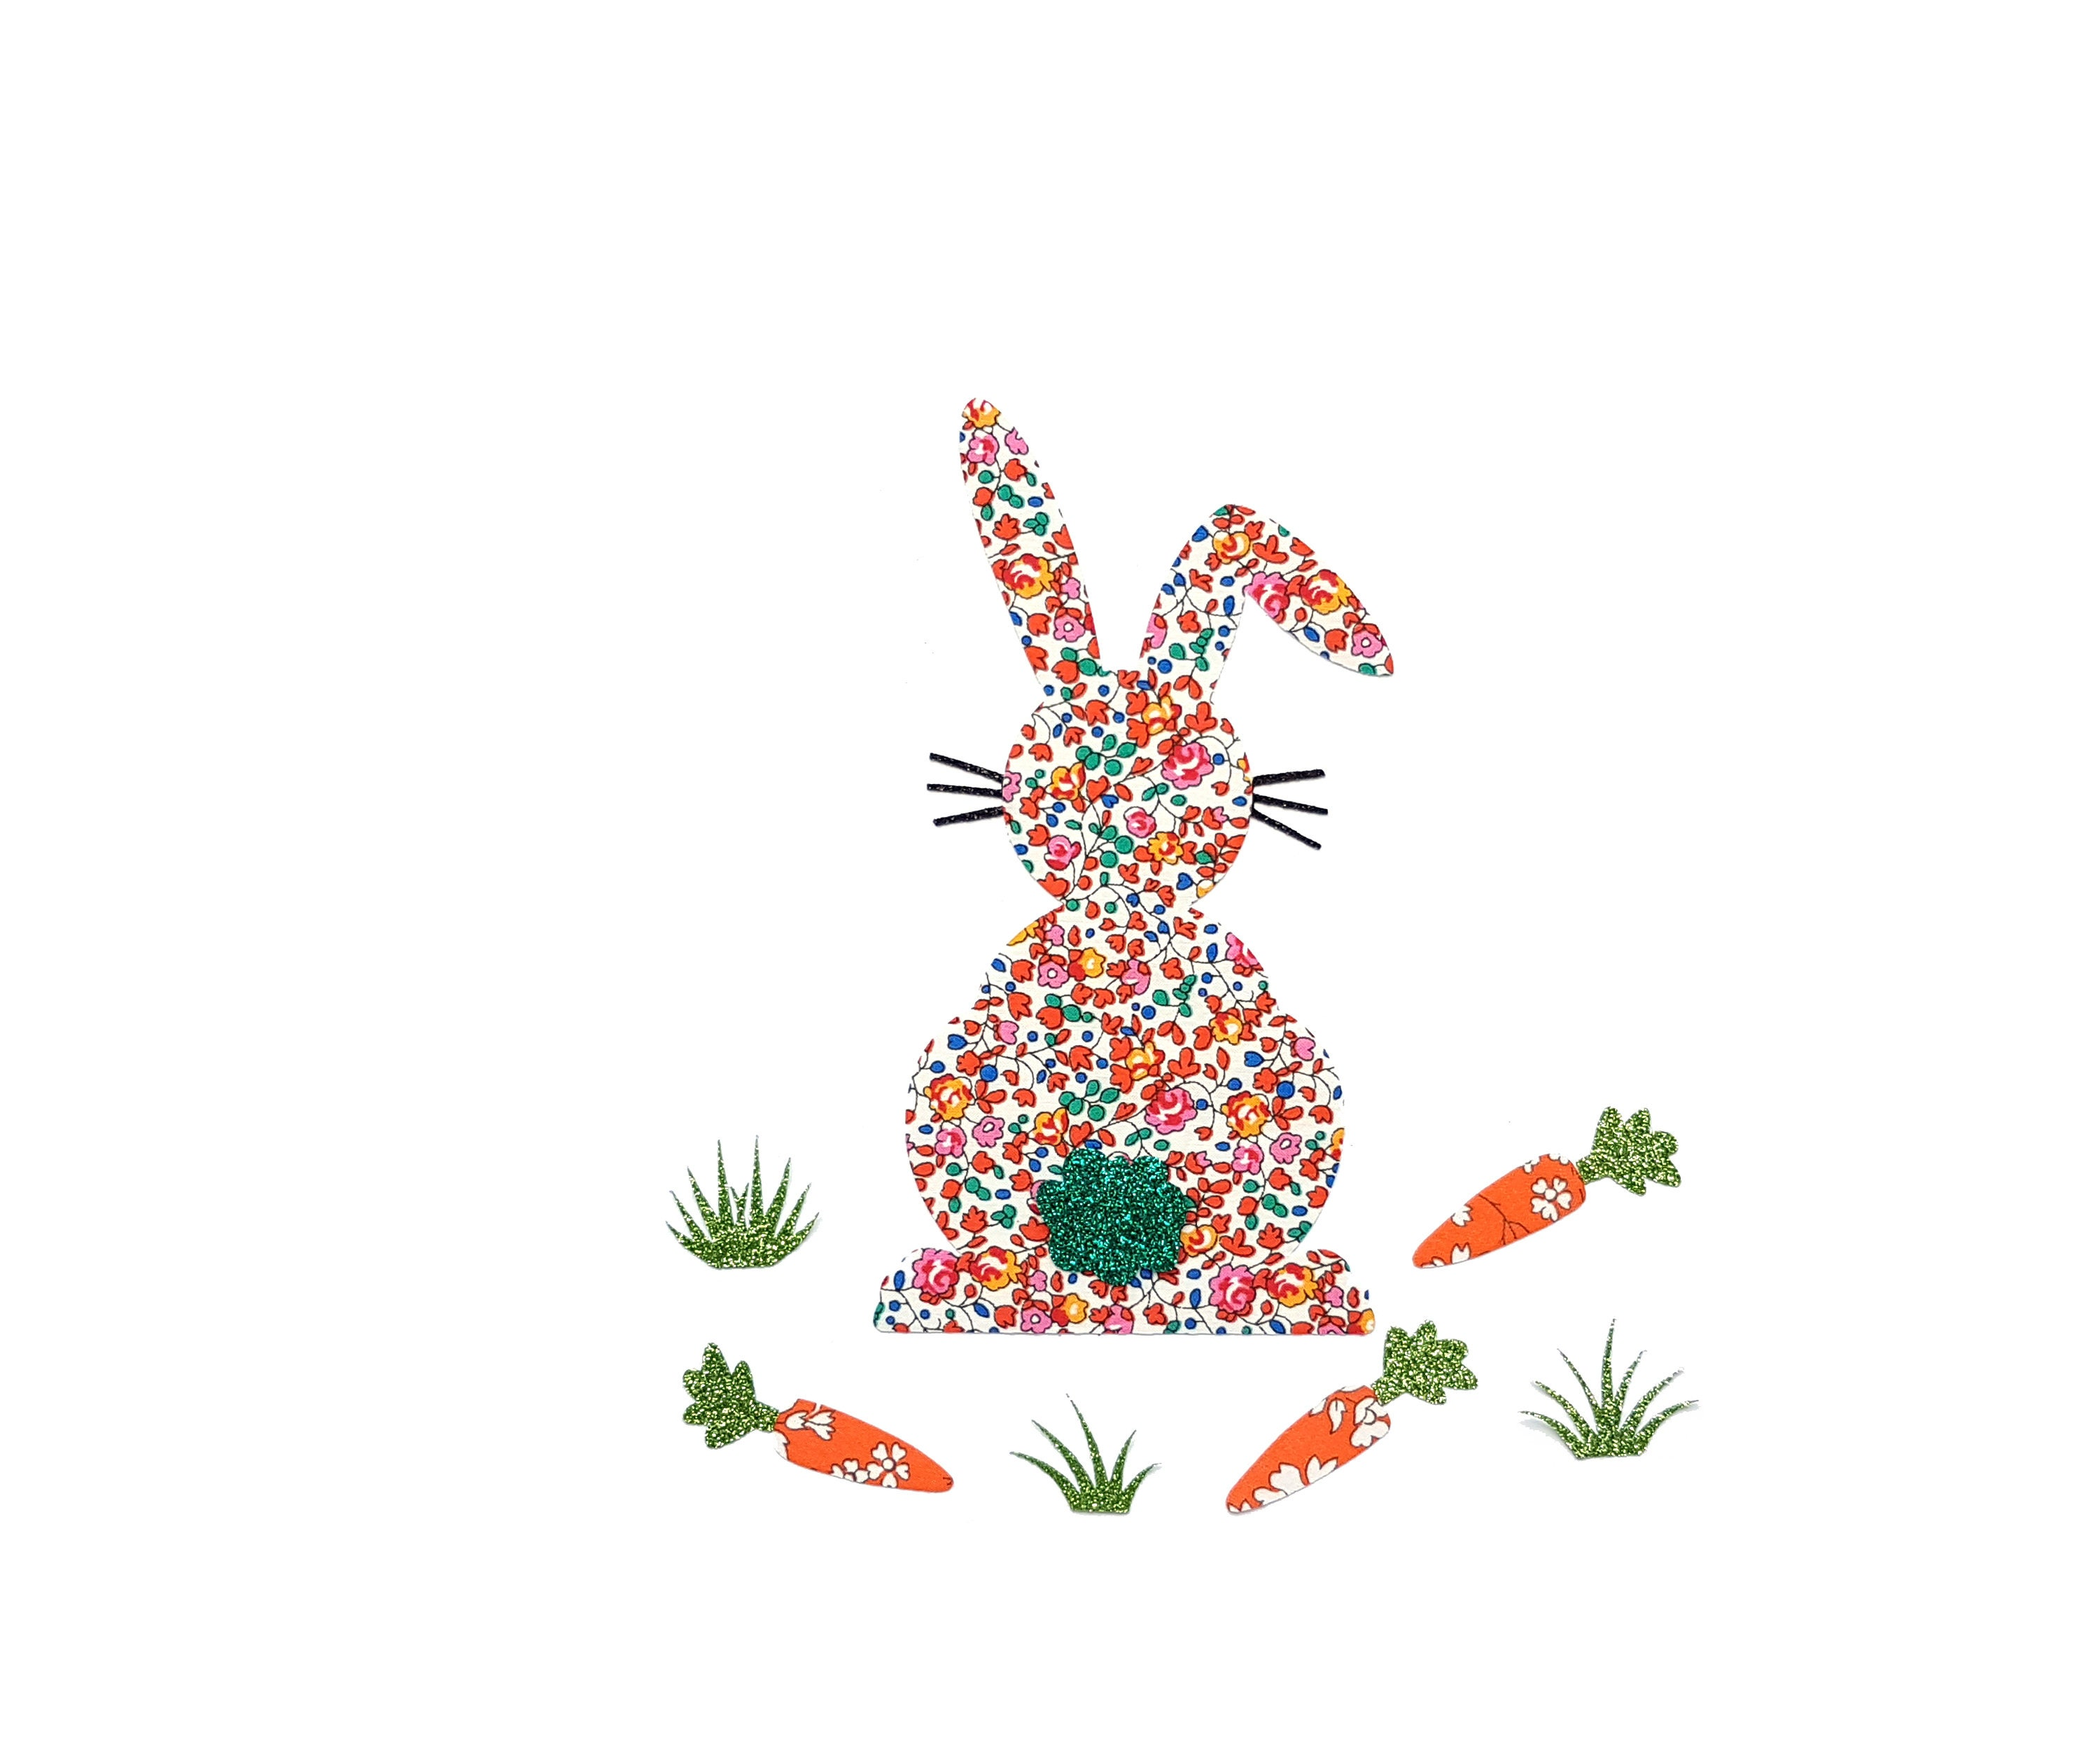 rabbit kids decoration applique Cute bunny animal patch kids custom applied Easter iron on bunnies ornament Liberty Phoebe